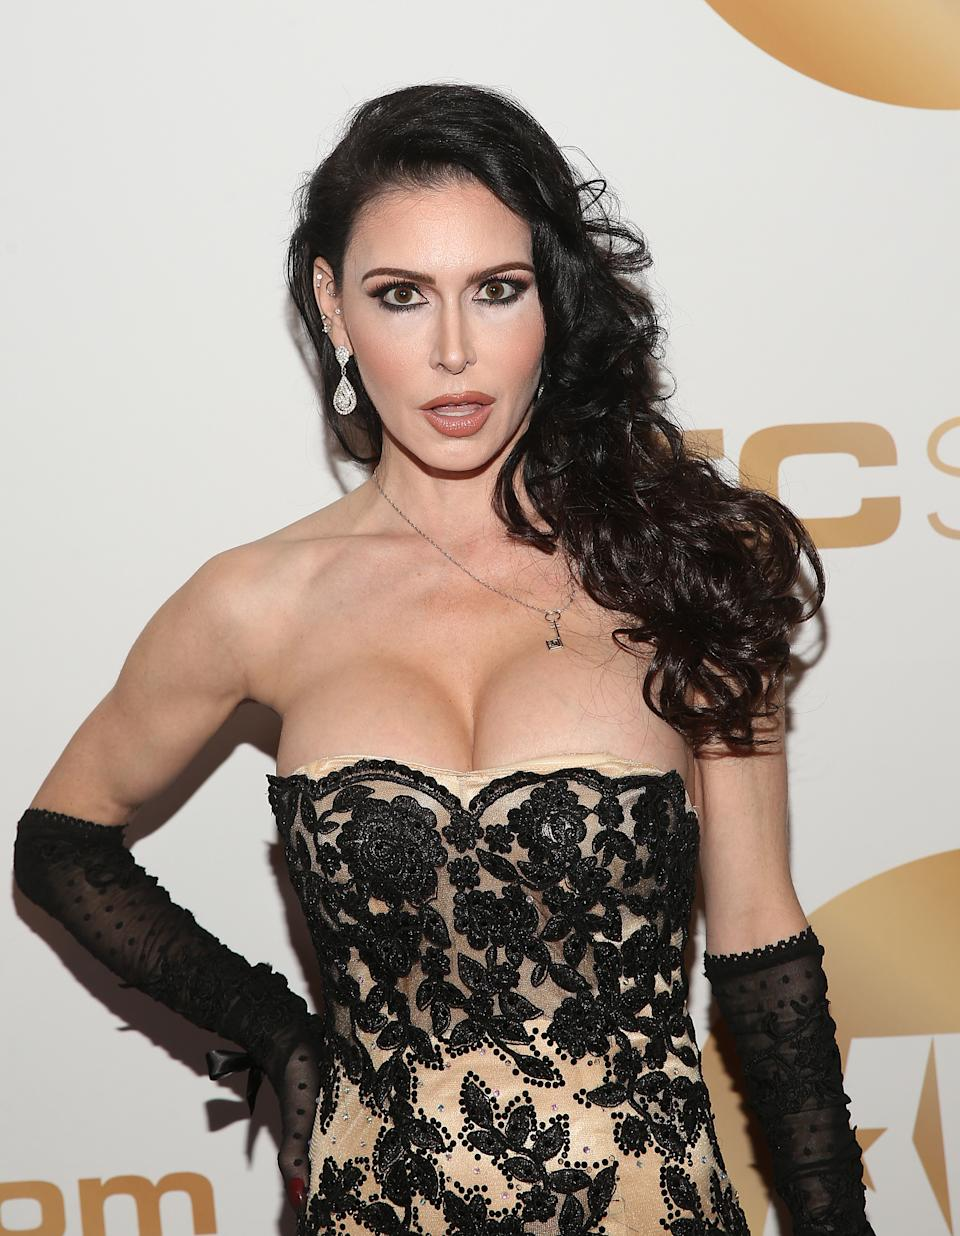 LOS ANGELES, CALIFORNIA - JANUARY 17: Jessica Jaymes attends the 2019 XBIZ Awards on January 17, 2019 in Los Angeles, California. (Photo by Jesse Grant/Getty Images for XBIZ Awards)